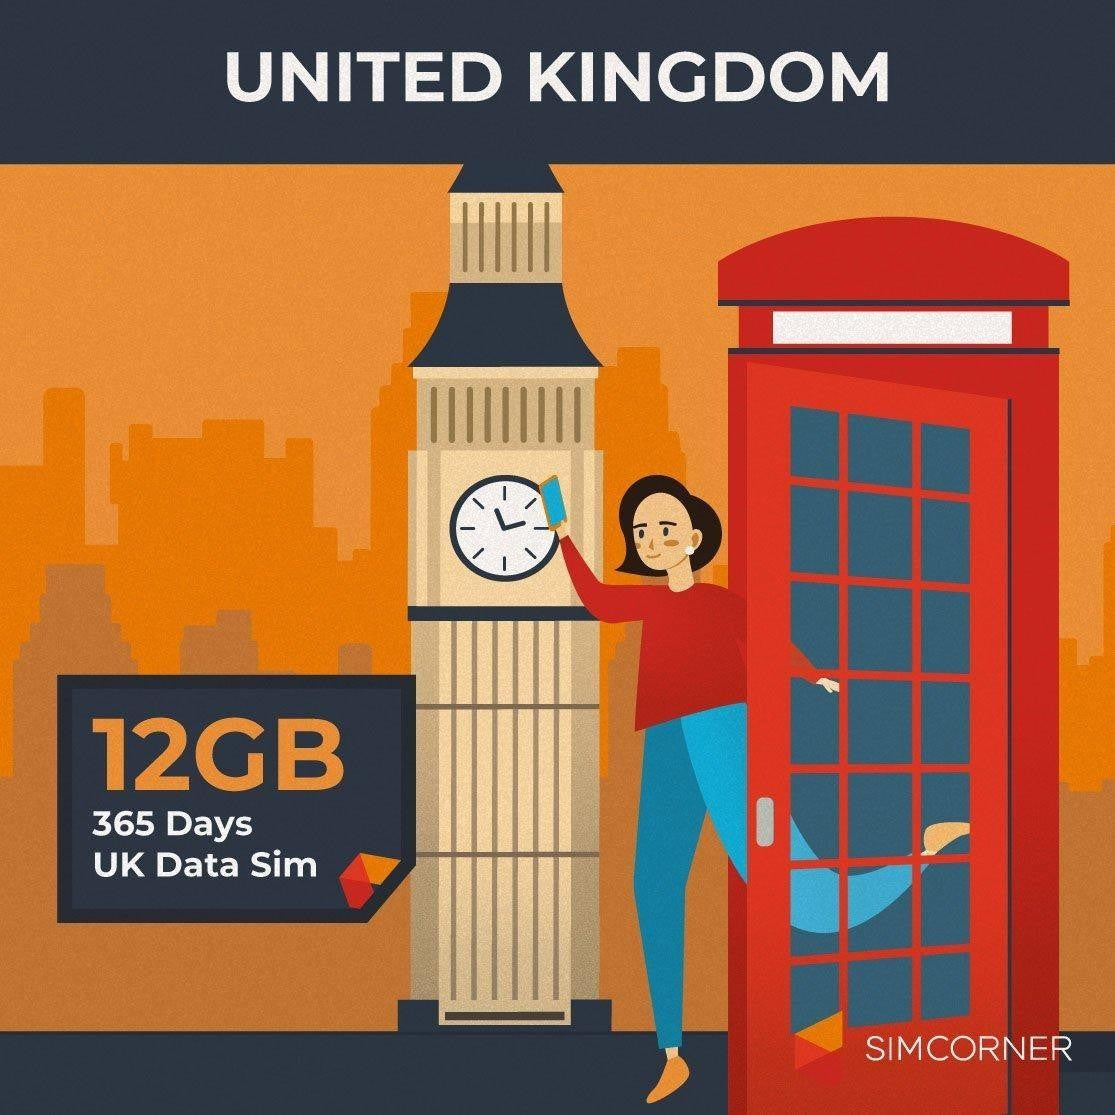 uk-data-only-sim-12gb